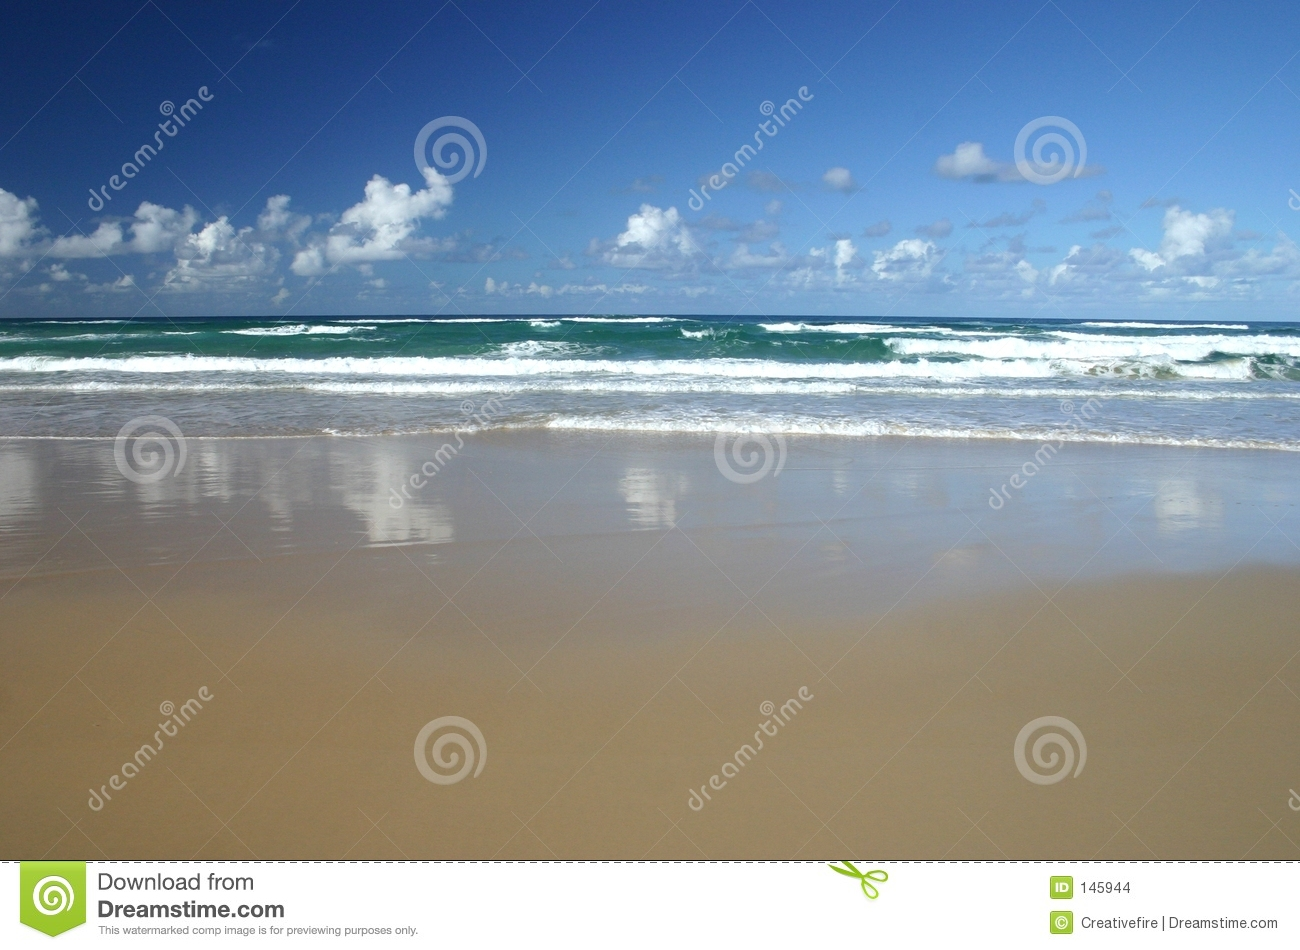 Sand Waves and Surf